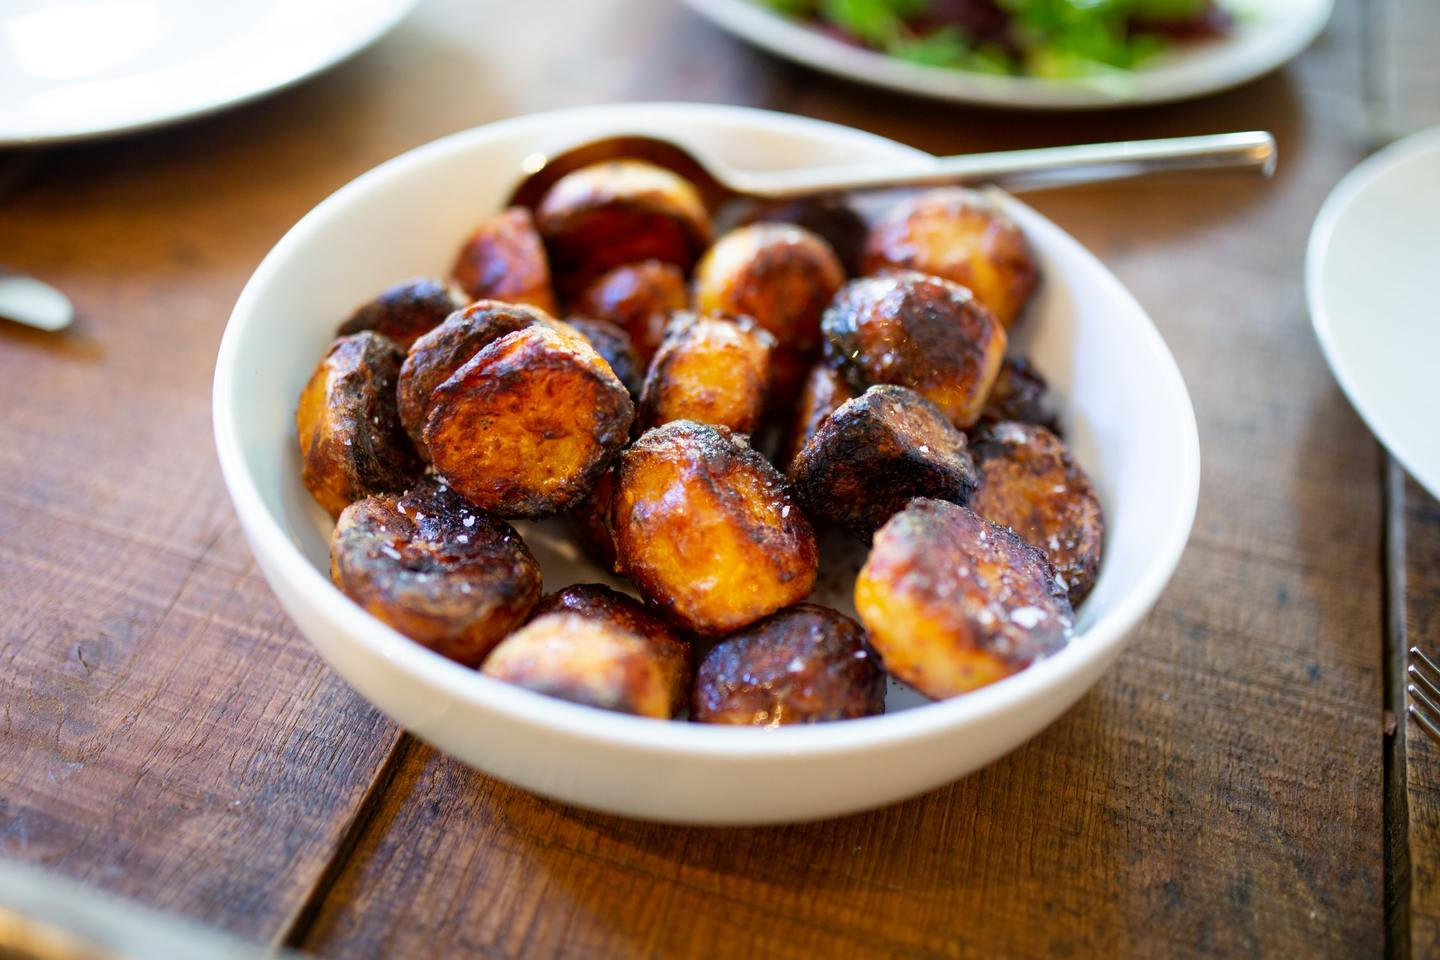 A bowl of roast potatoes